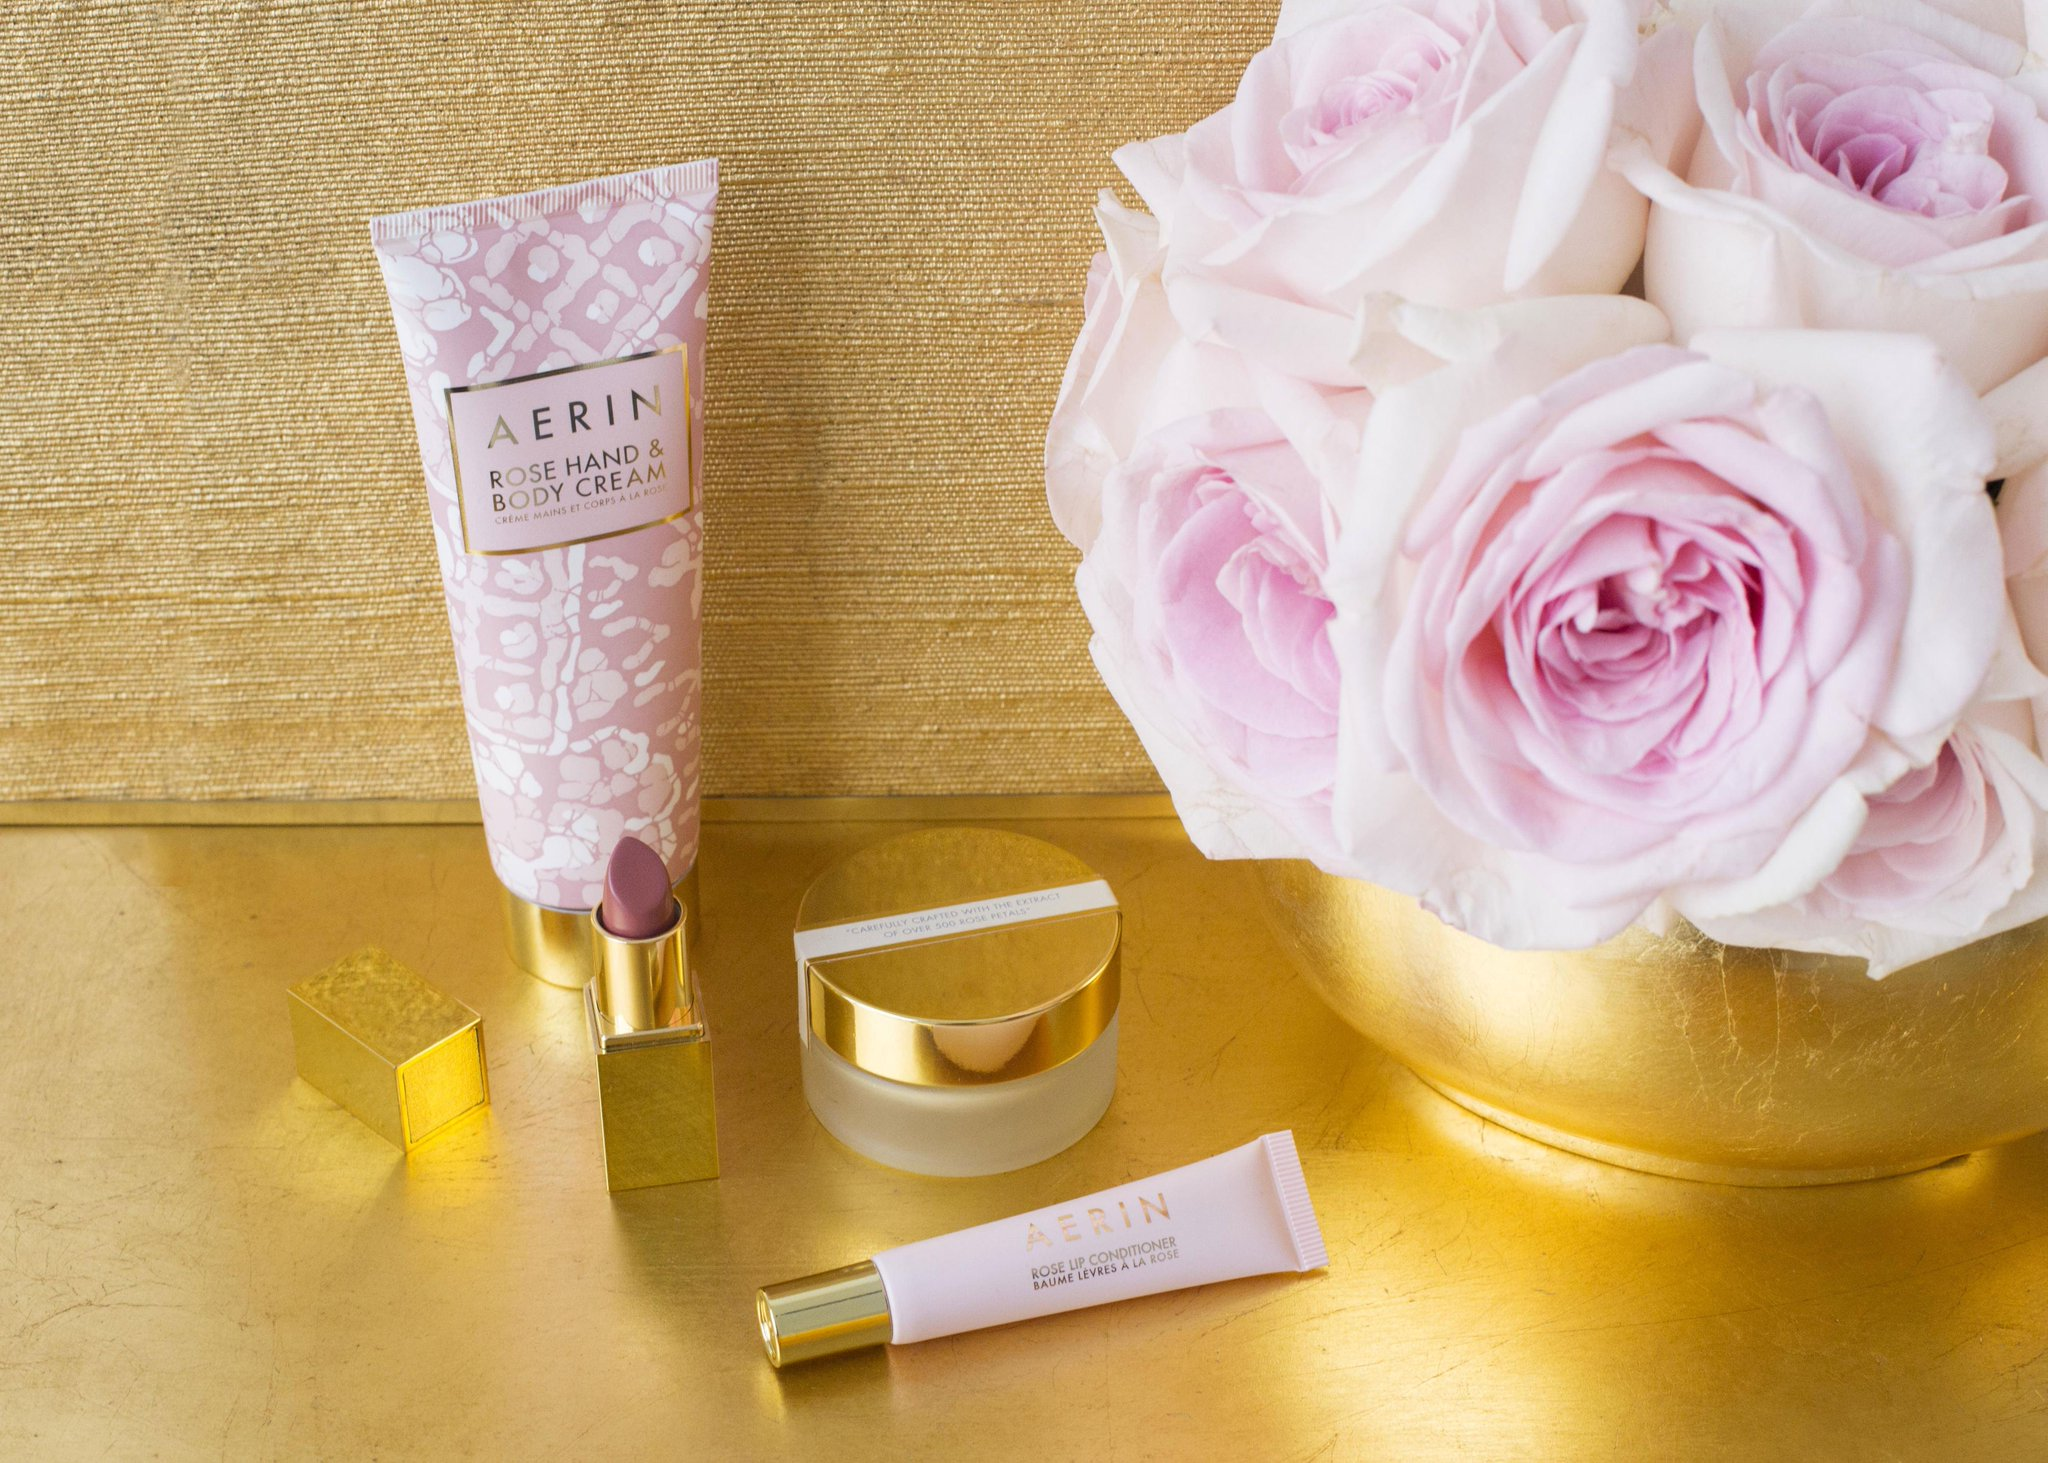 Scent and lip of the day, from the @AERIN Beauty essentials collection: http://t.co/ztvu7rKBnc #AERINBeauty http://t.co/UsP9iFzDAm